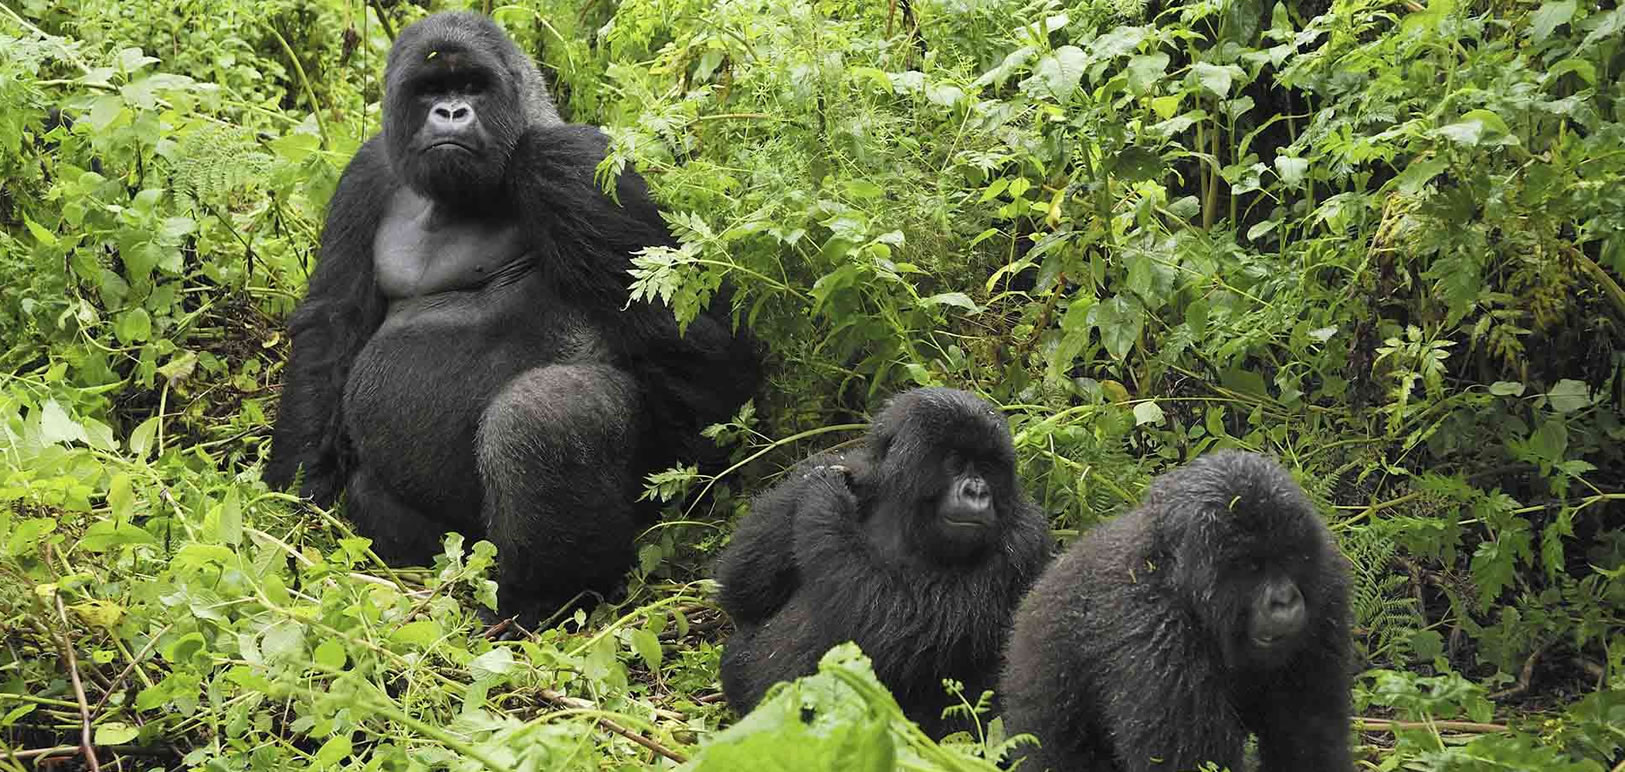 mountain gorillas Mountain gorillas are one of the most endangered animals because of the threats they face that are harmful to their well-being and habitat.